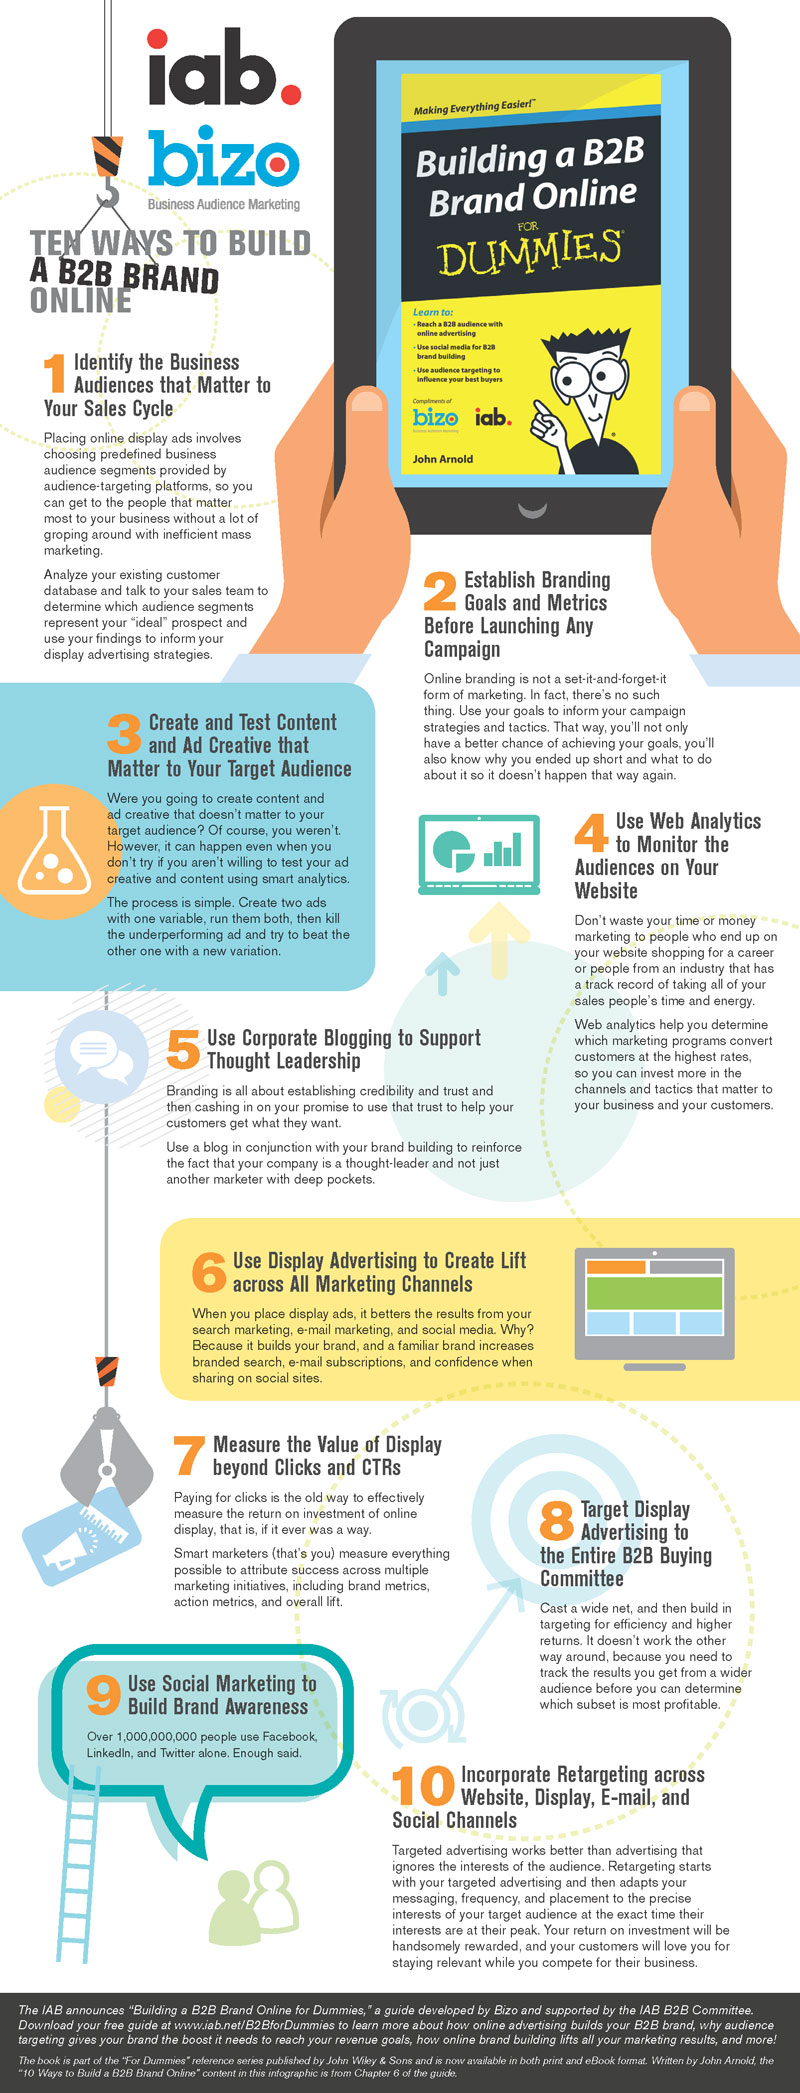 10 Tips For Building A Strong B2B Brand Online [Infographic]